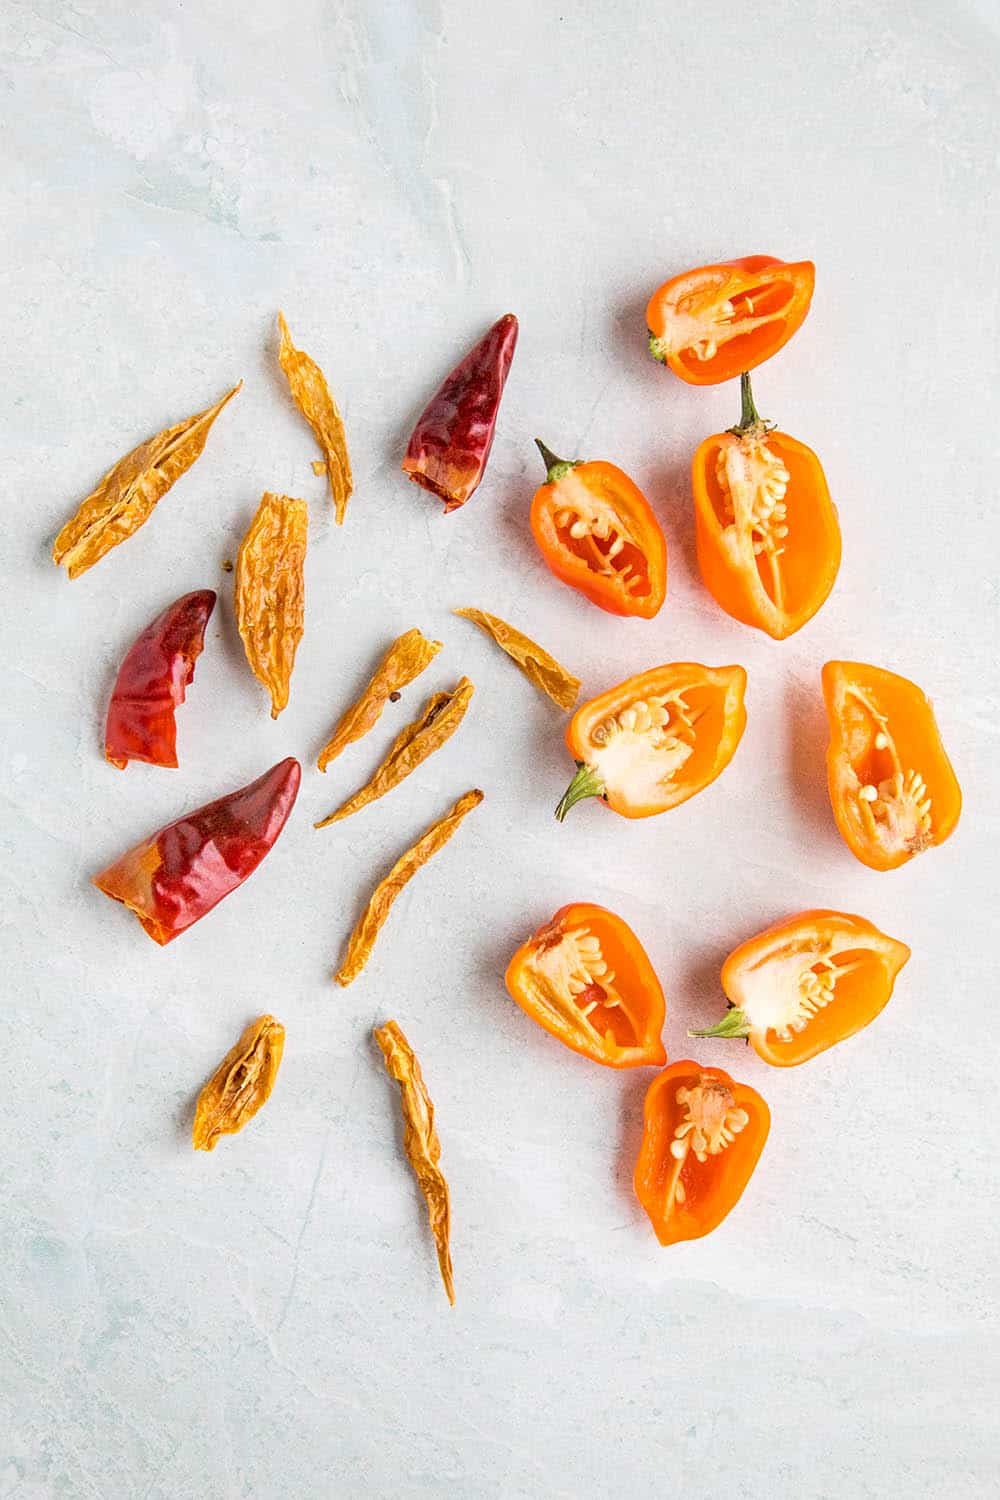 Fresh habanero peppers and dried spicy red peppers used to infuse honey with heat and flavor